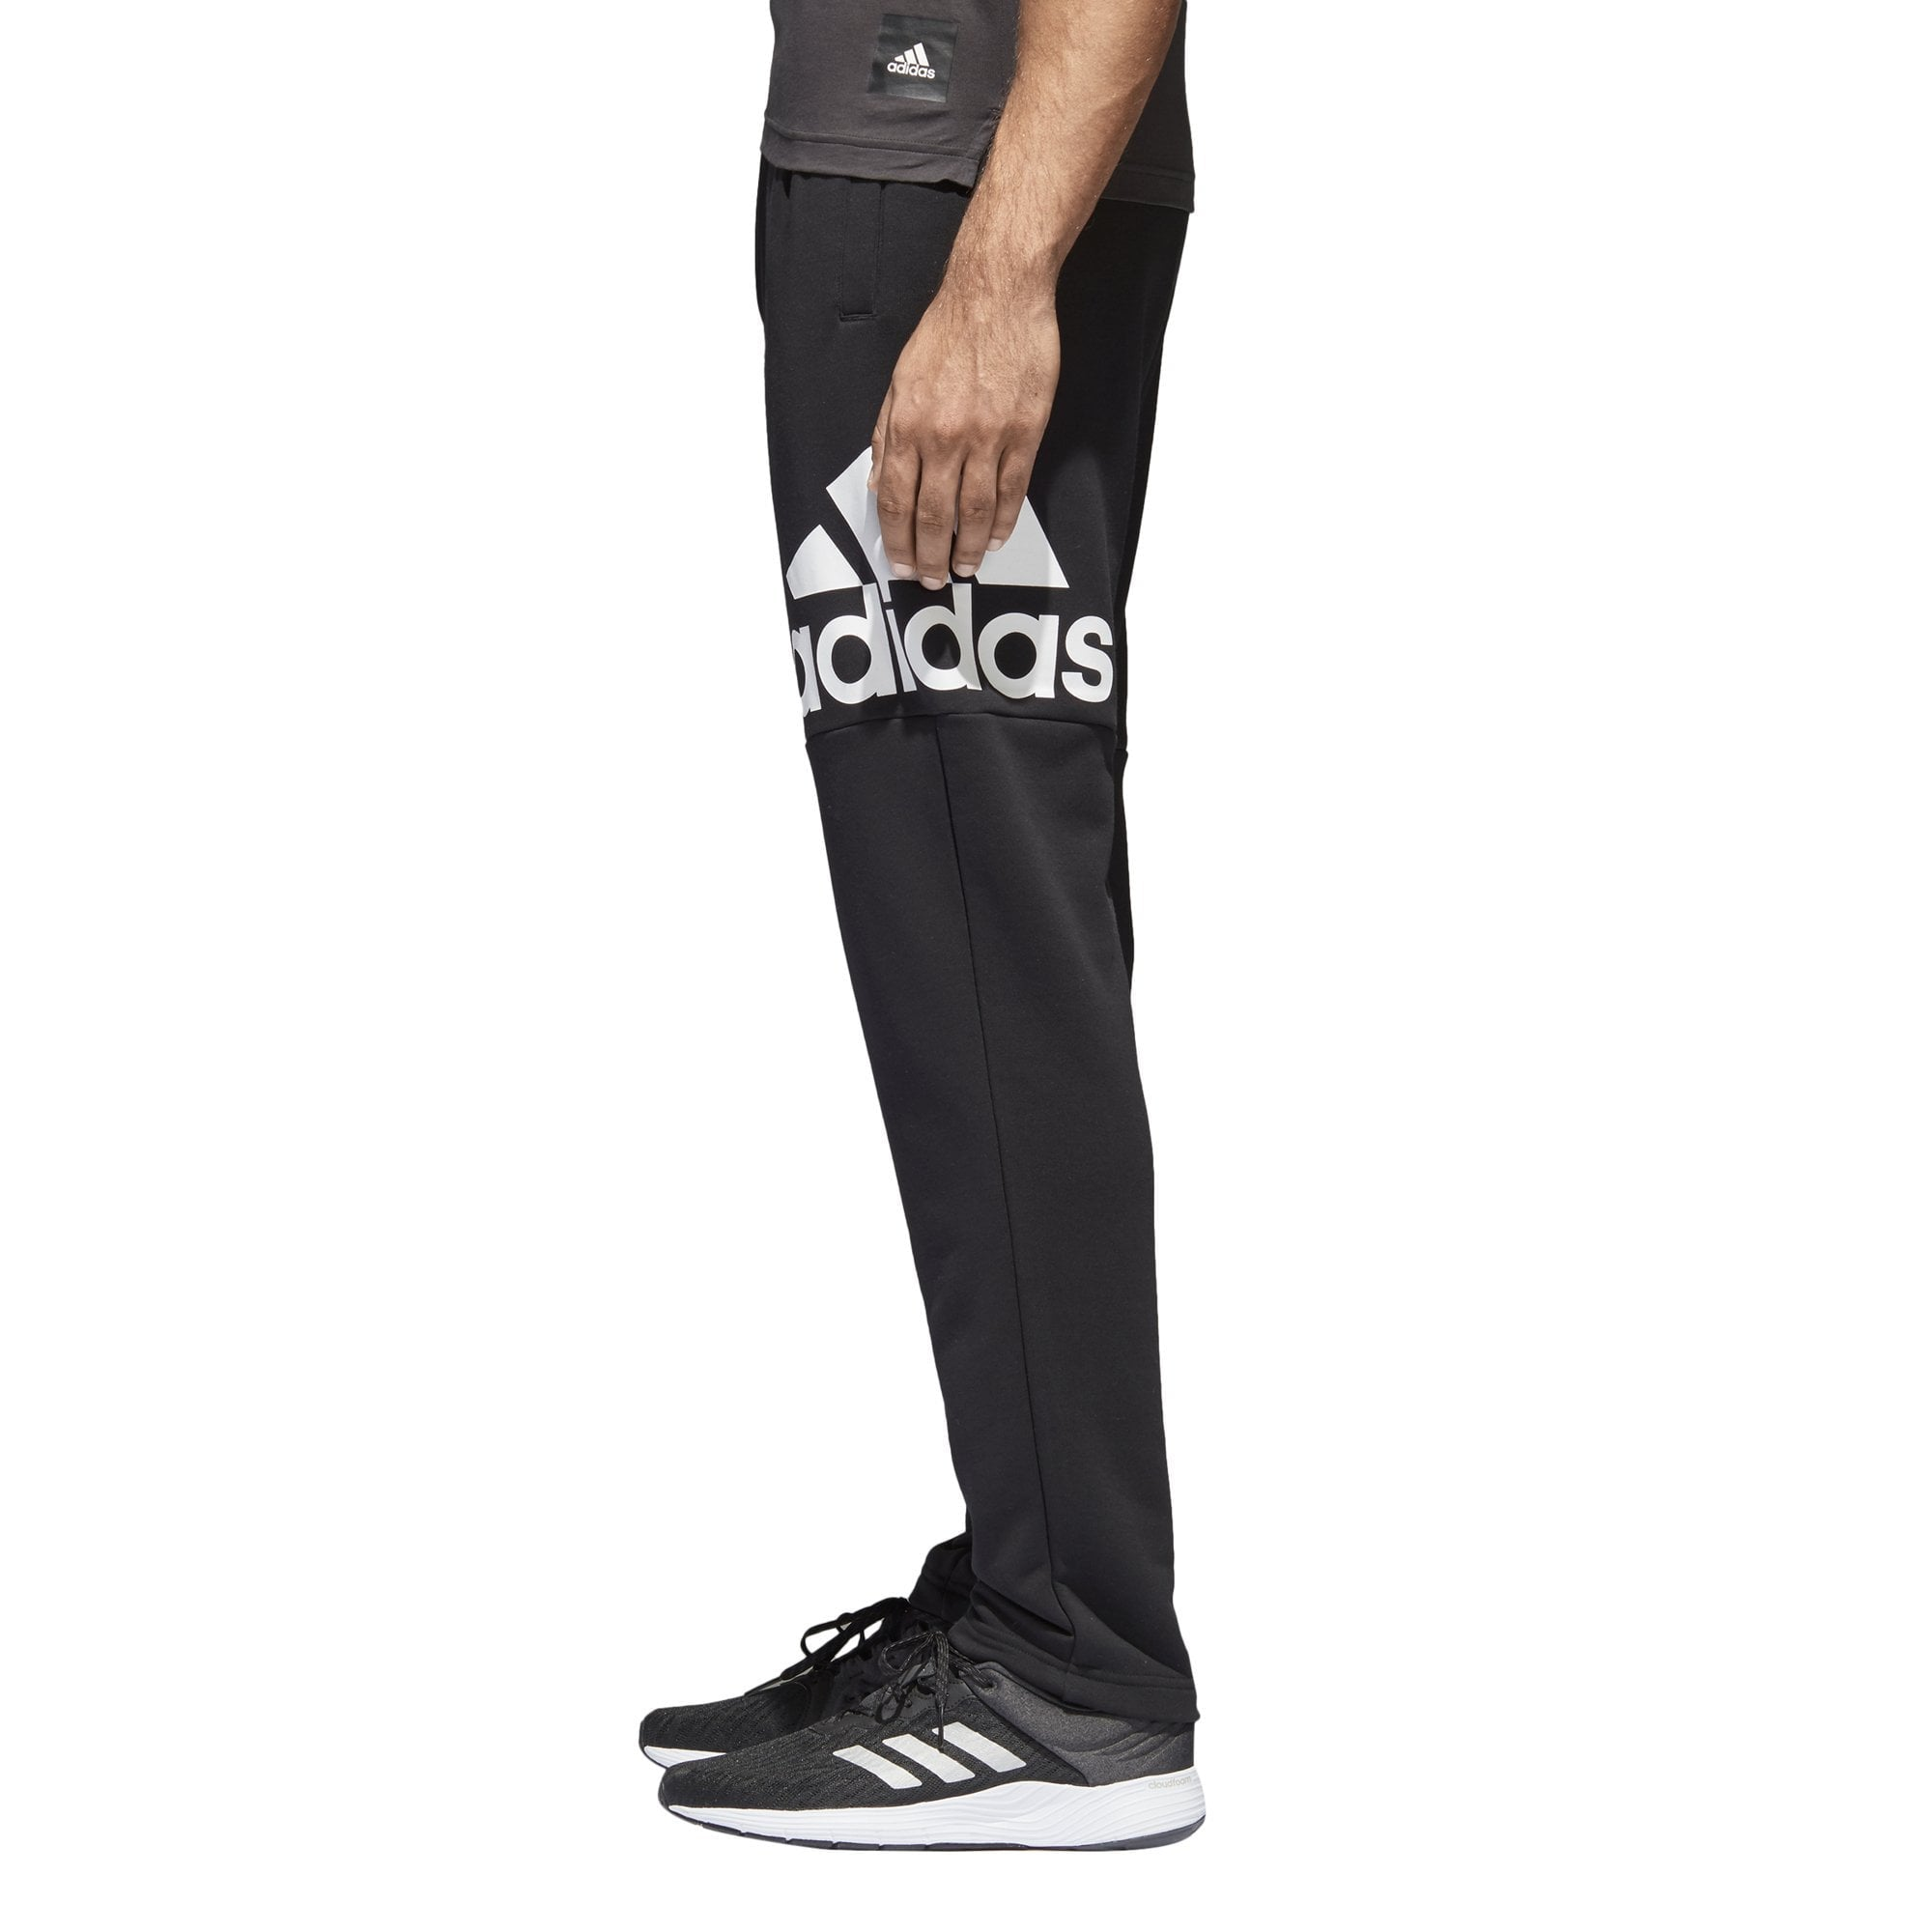 ADIDAS MEN'S ESSENTIAL LOGO BLACK/WHITE TRACK PANTS - INSPORT